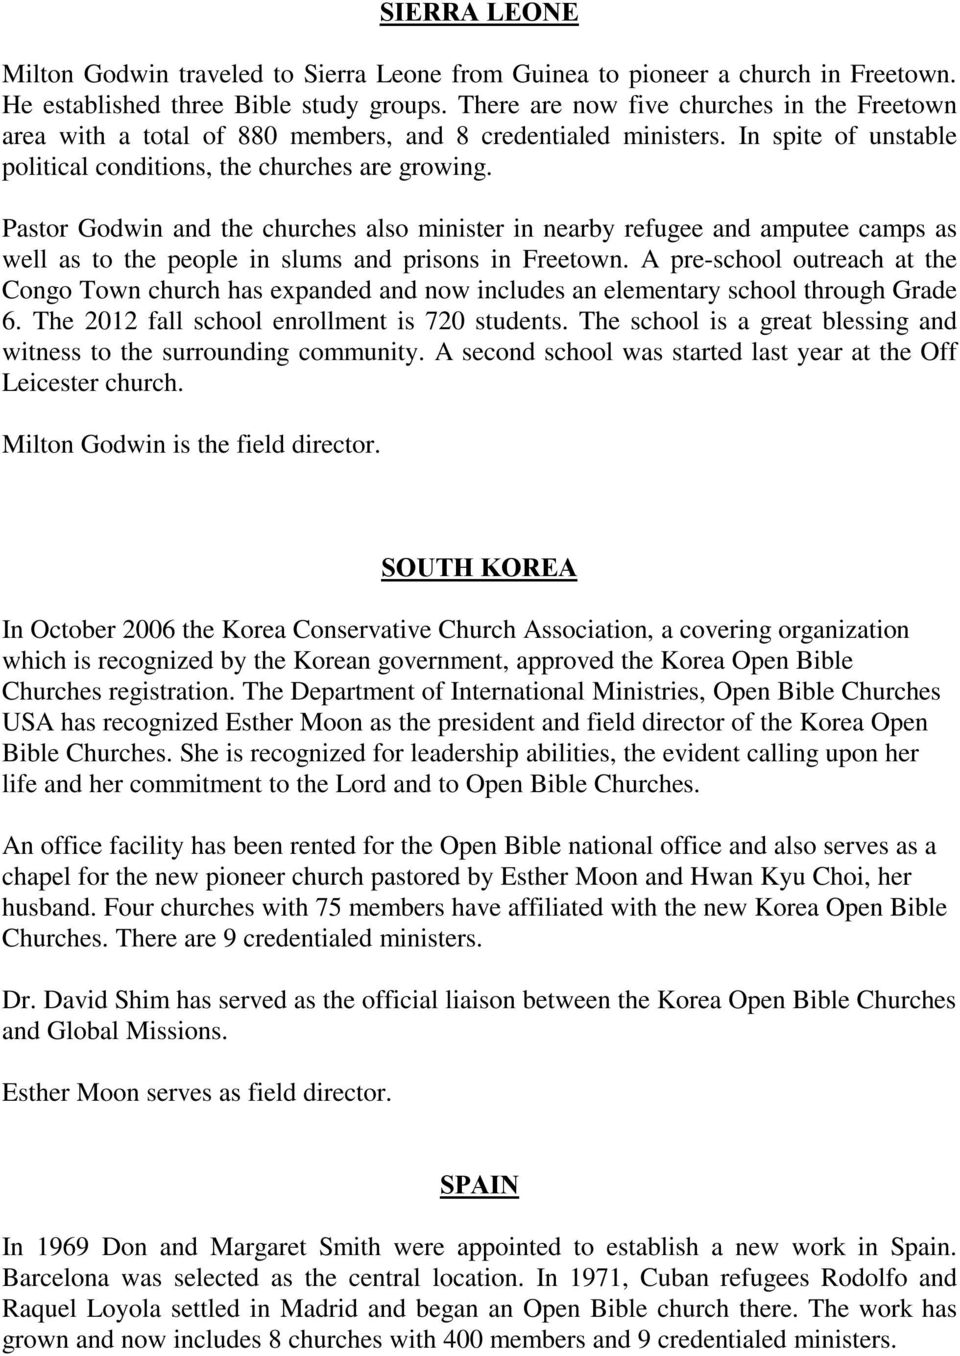 Global Missions of Open Bible Churches June PDF